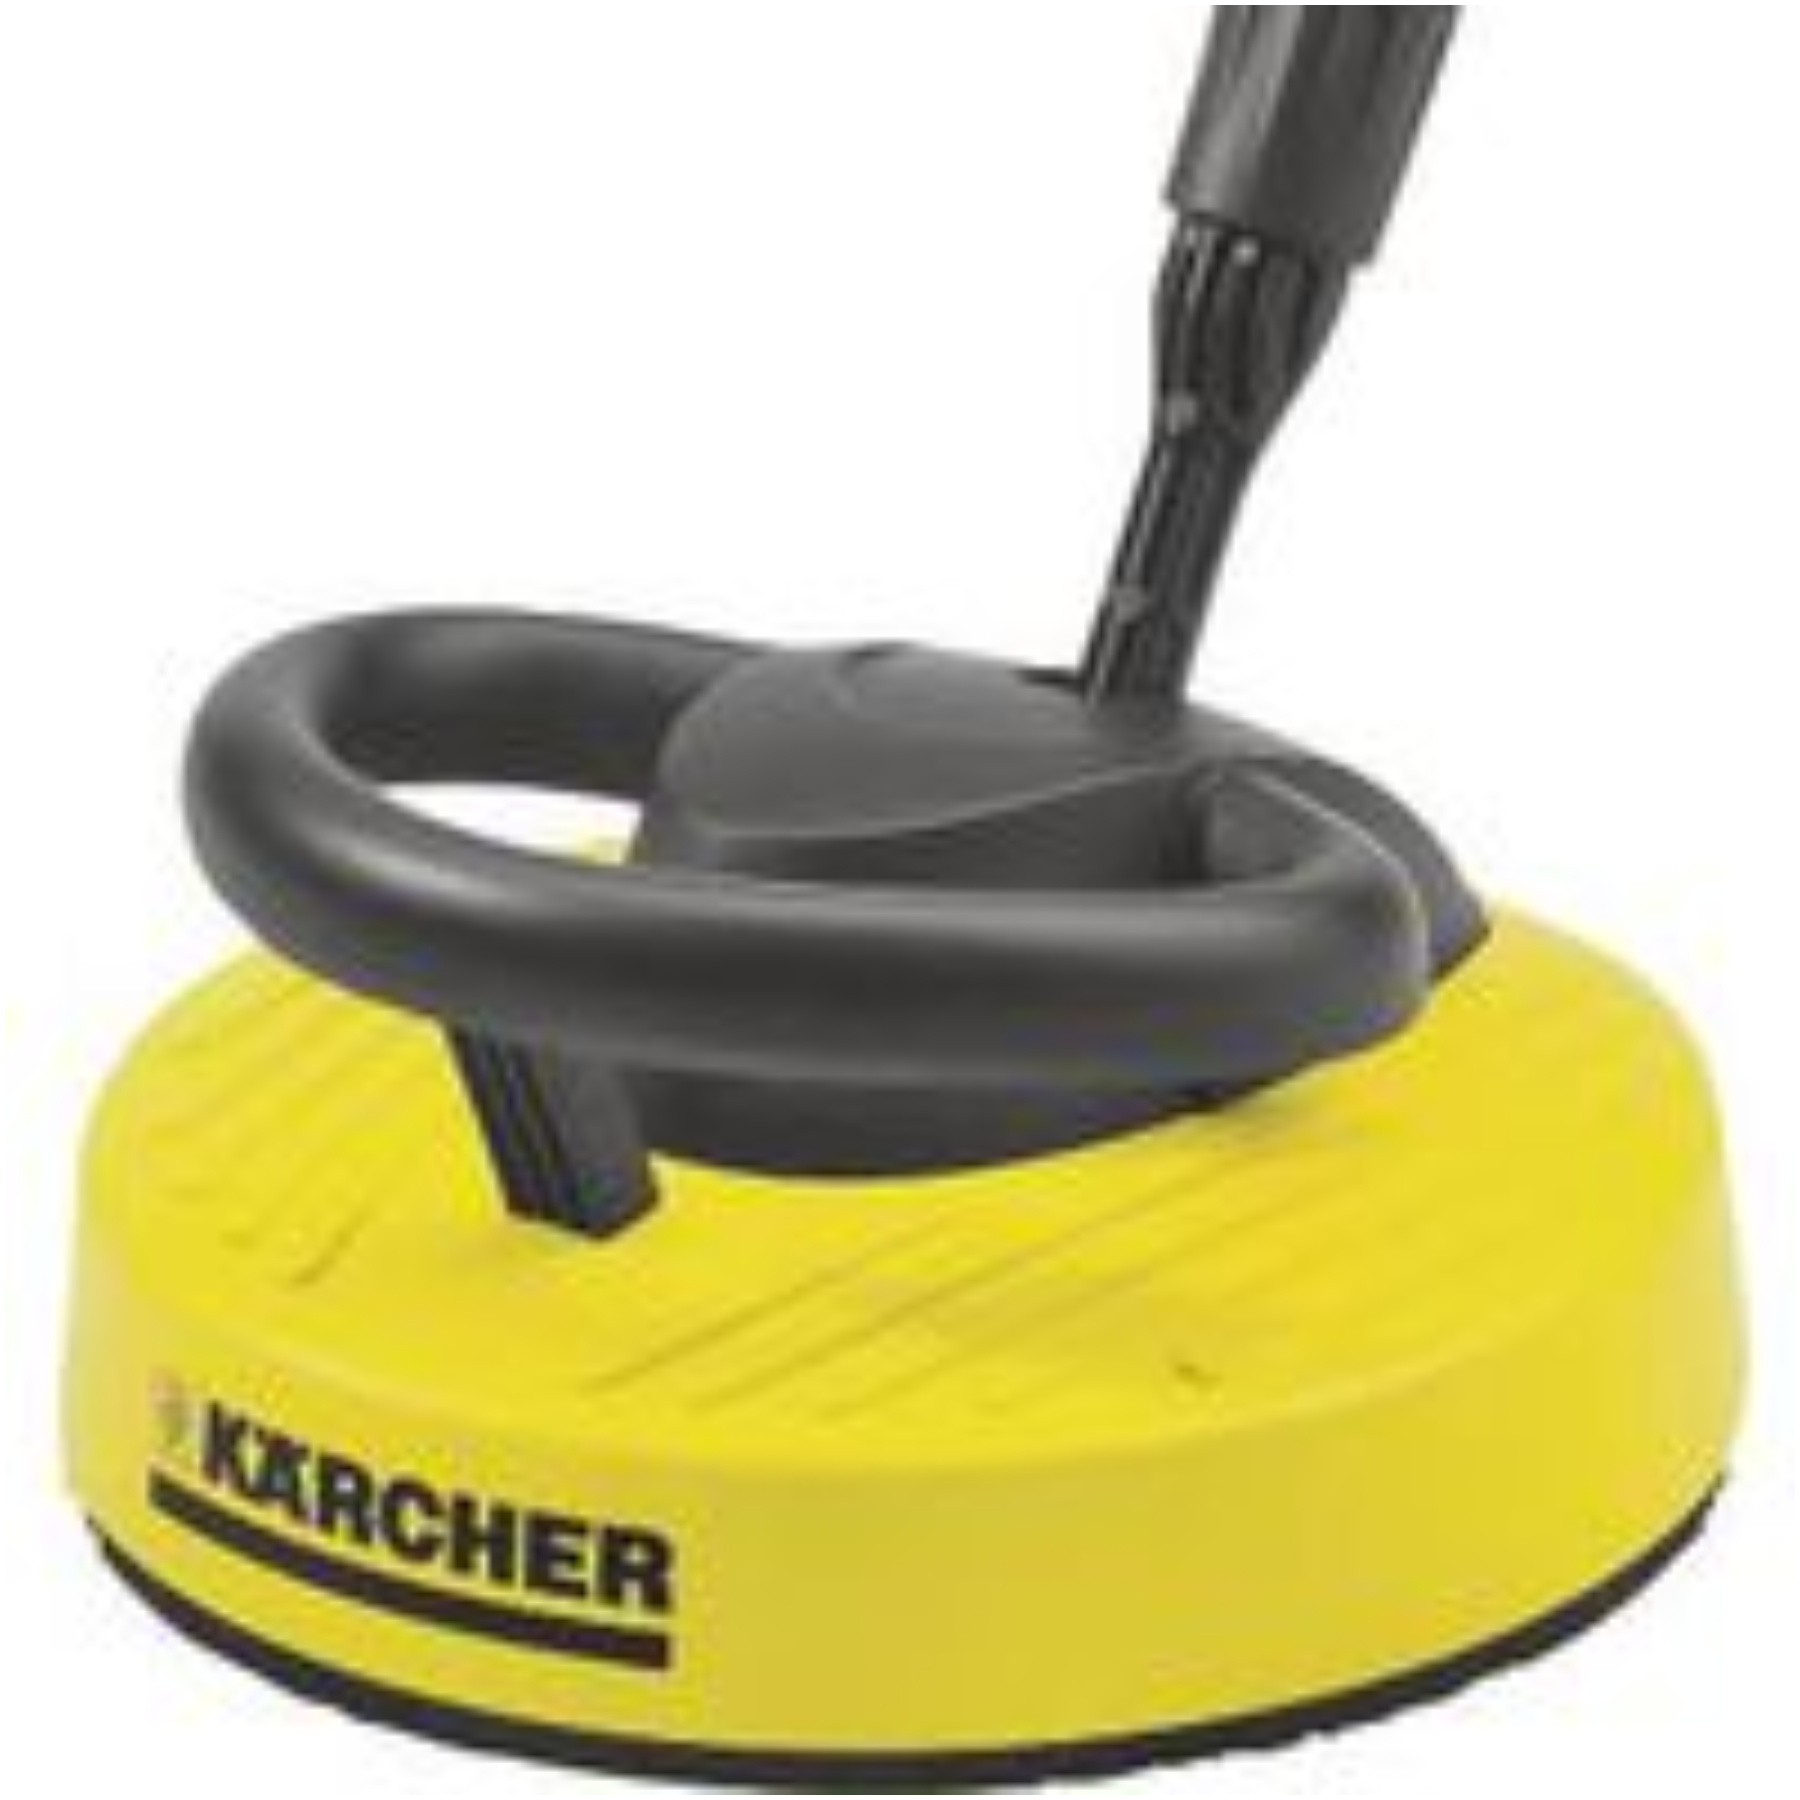 Karcher deck brush